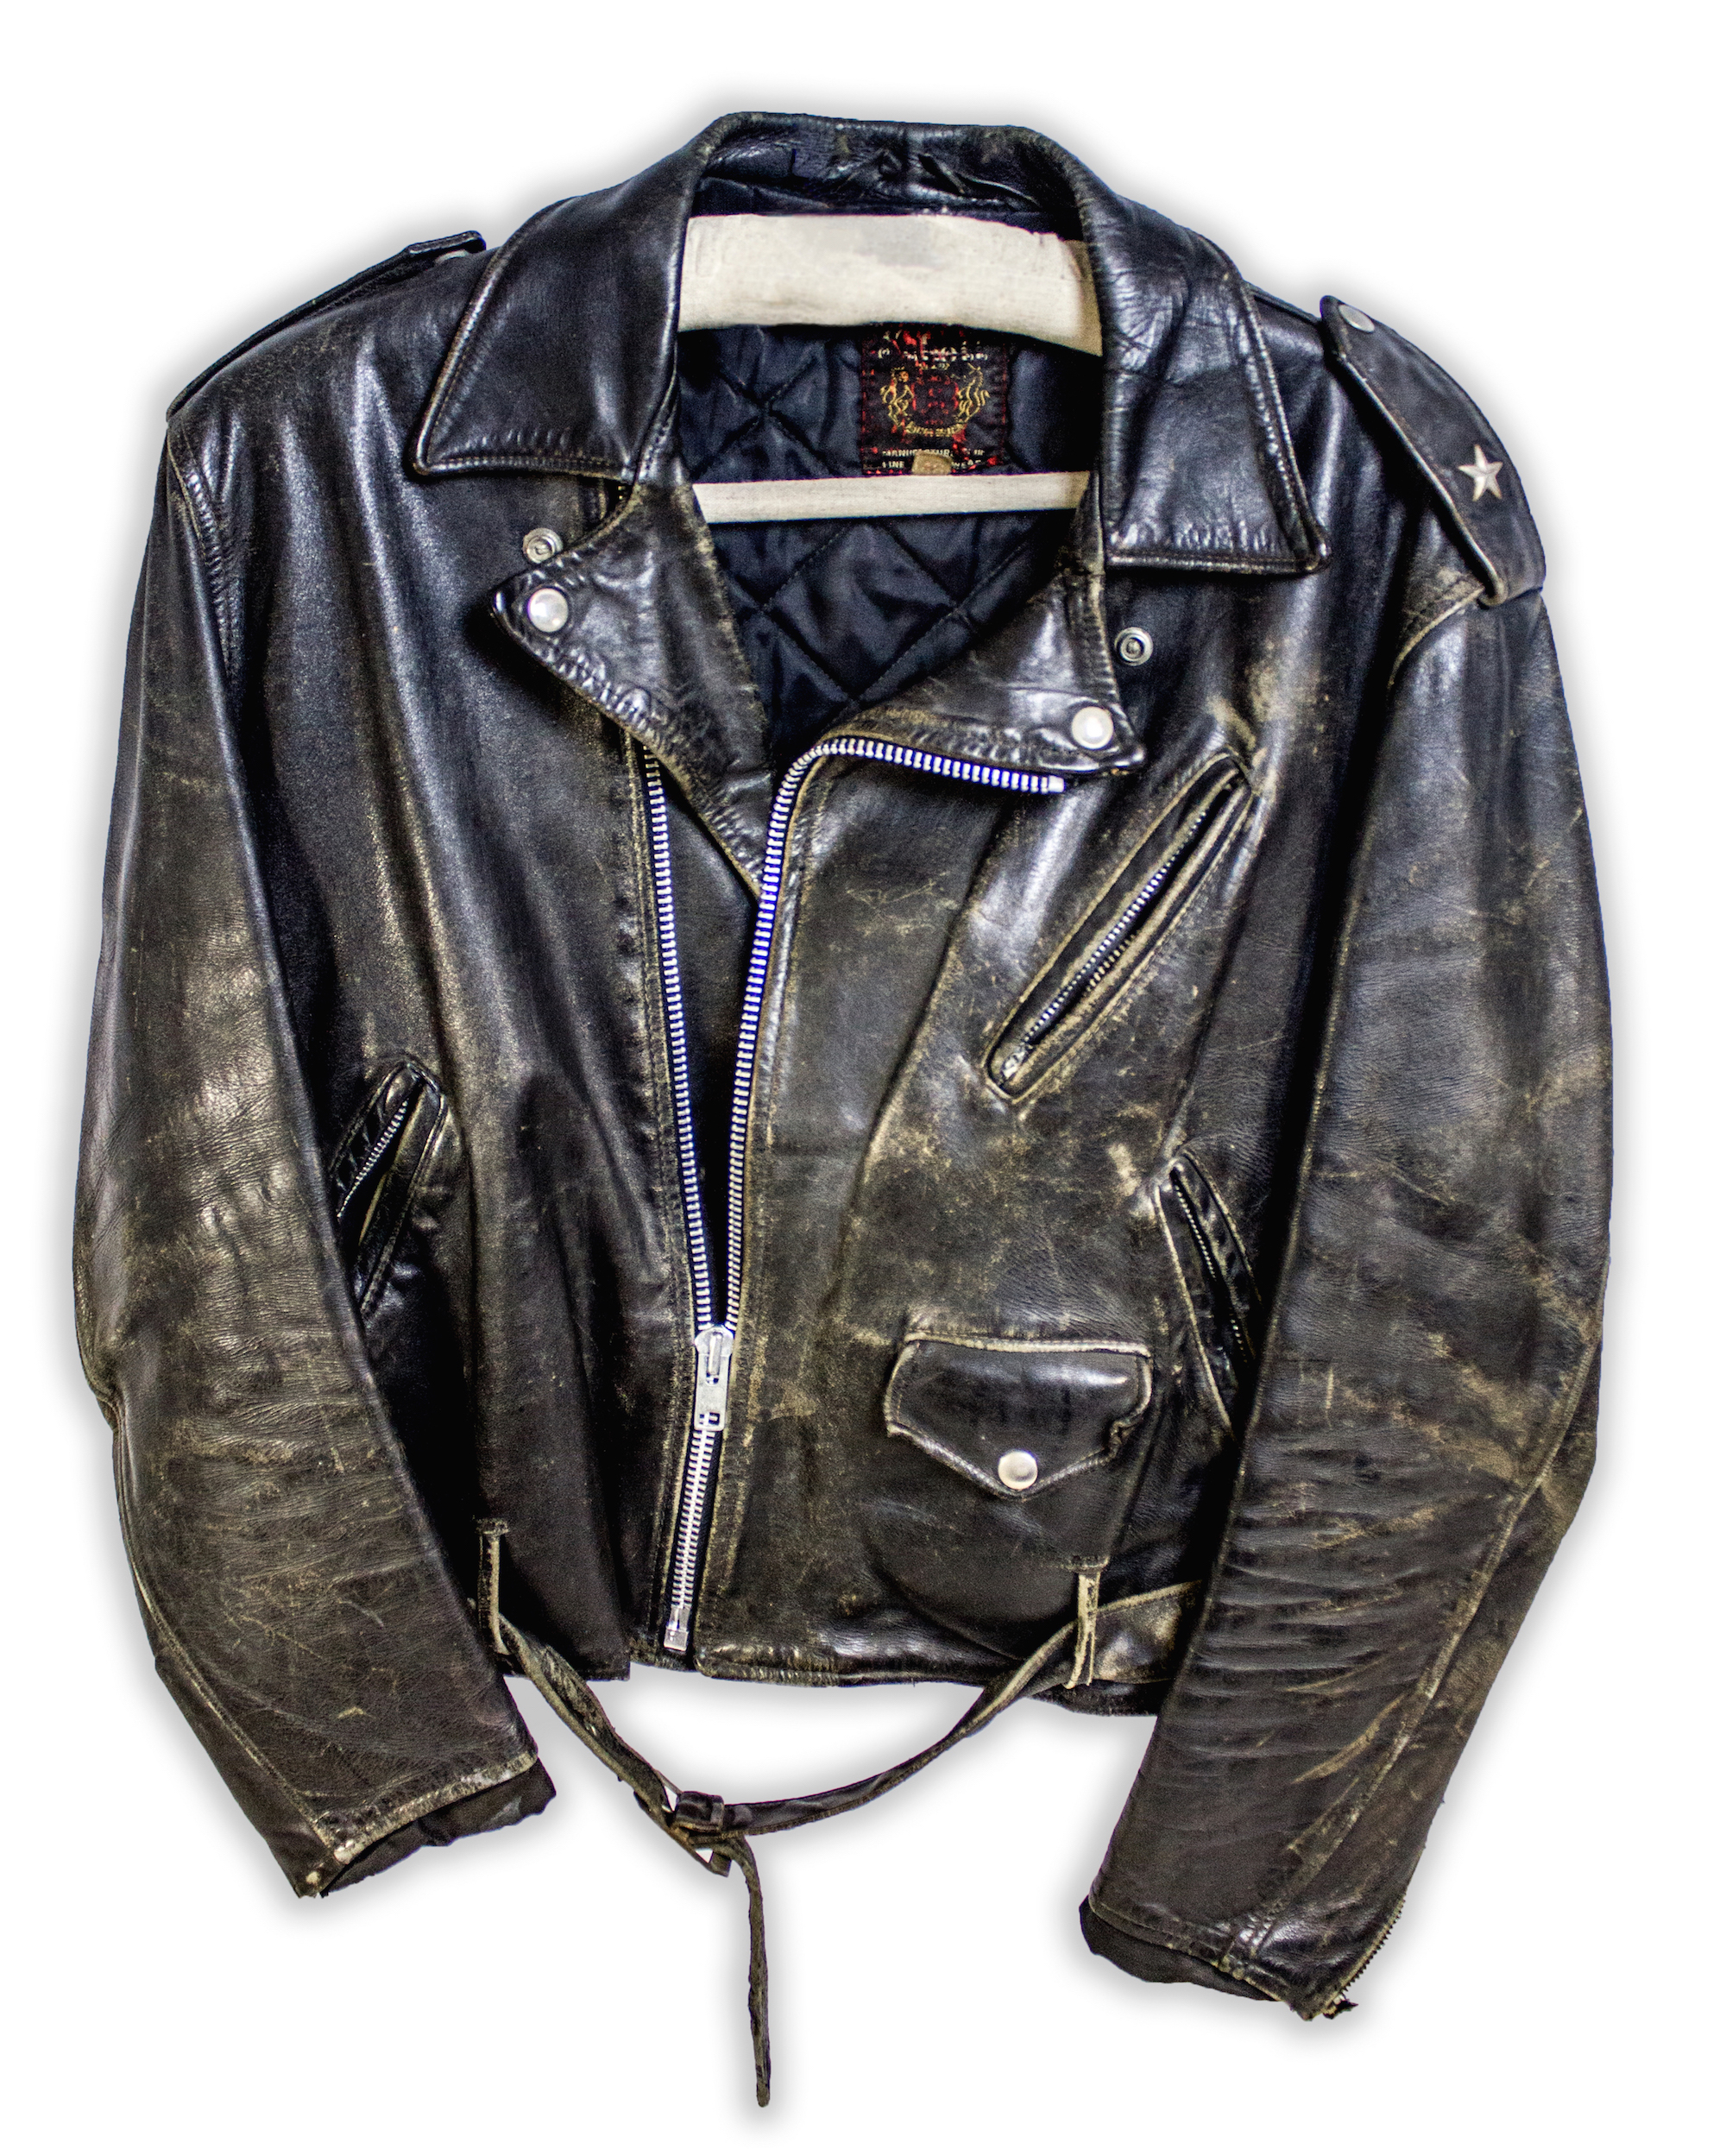 John Mellencamp wore this leather jacket throughout the 1980s. Source: Rock & Roll Hall of Fame